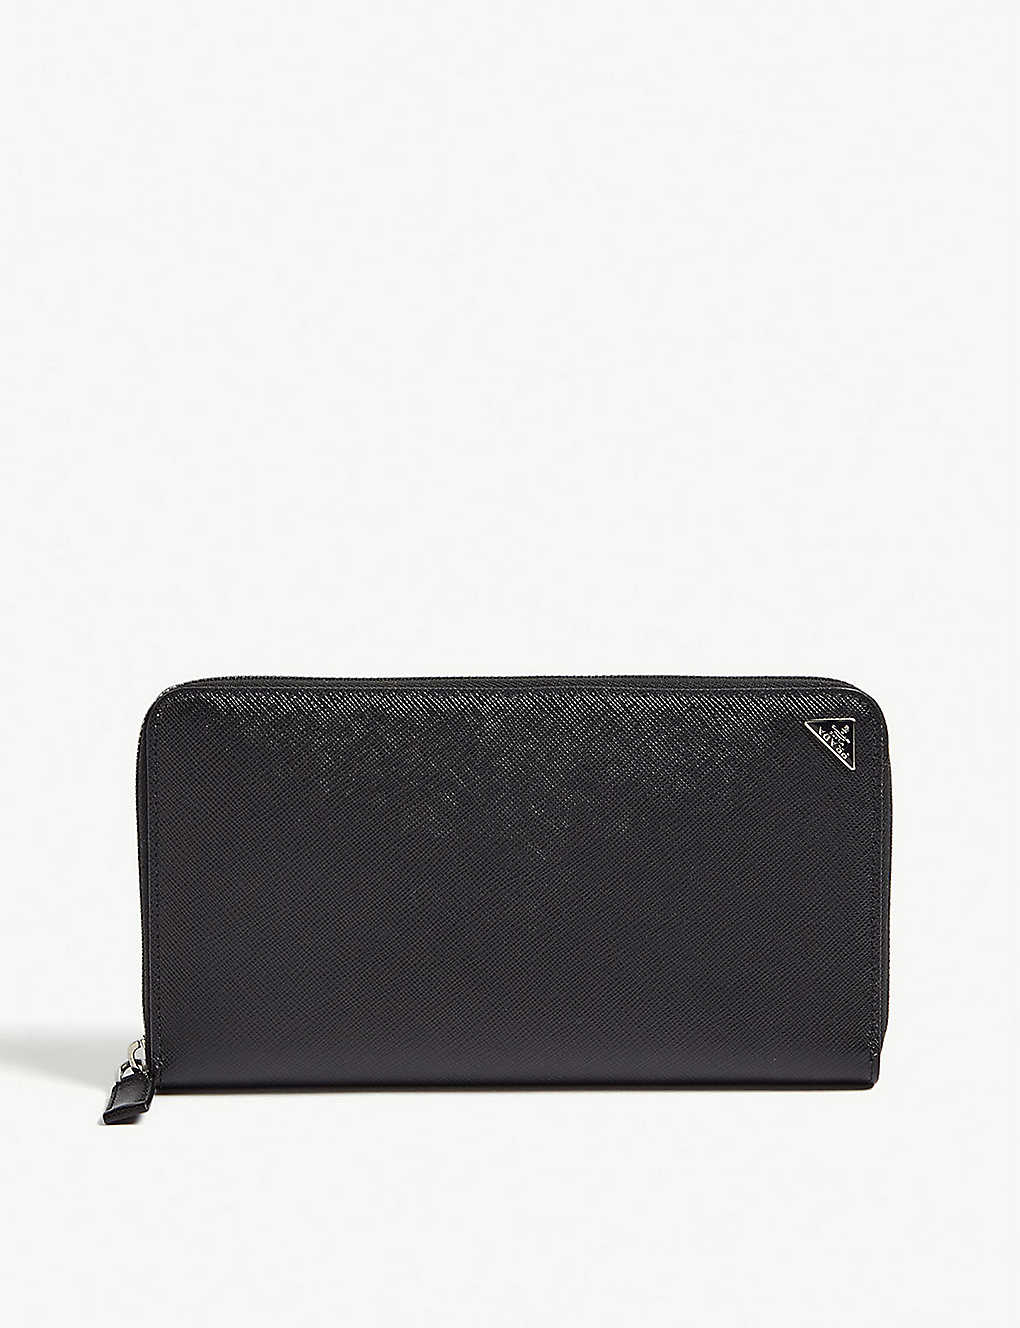 db9a51dc15d5 PRADA - Large Saffiano leather travel wallet | Selfridges.com